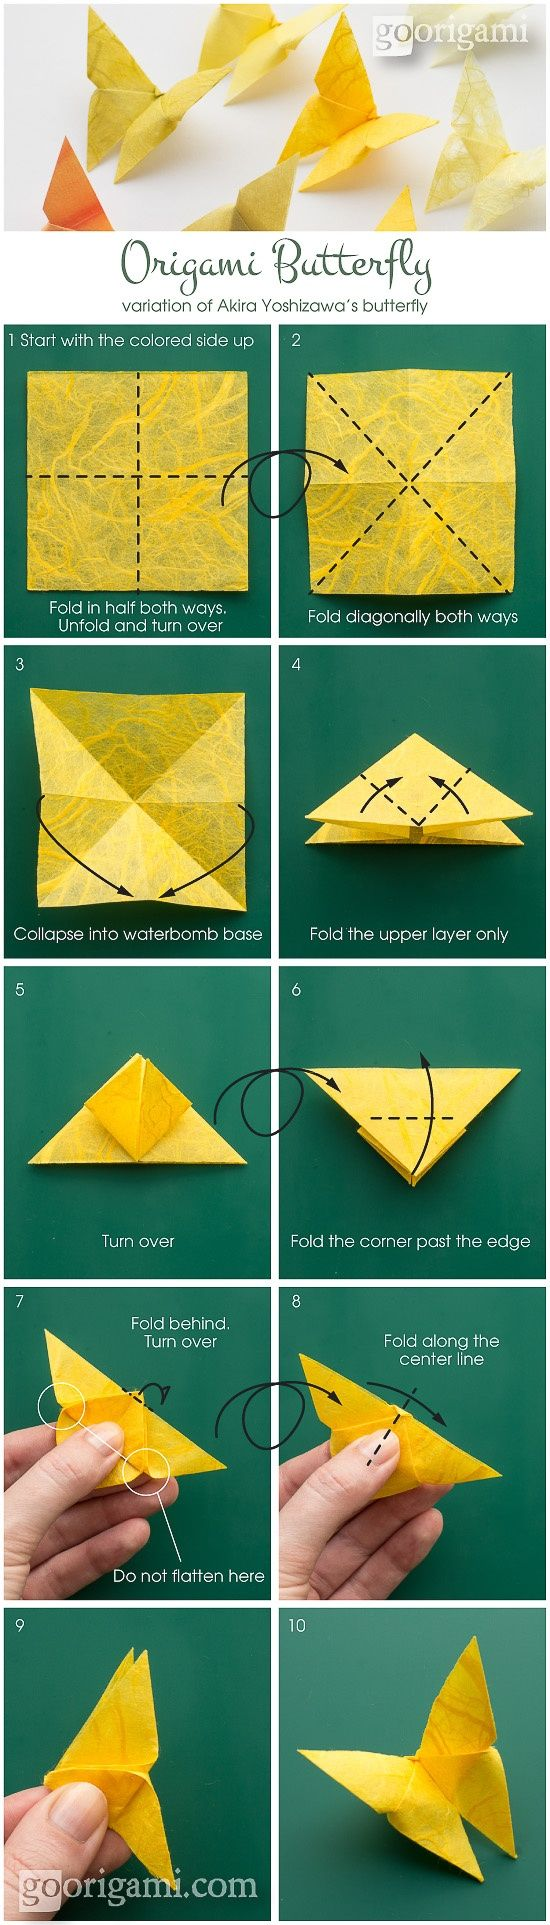 How to: make an origami butterfly